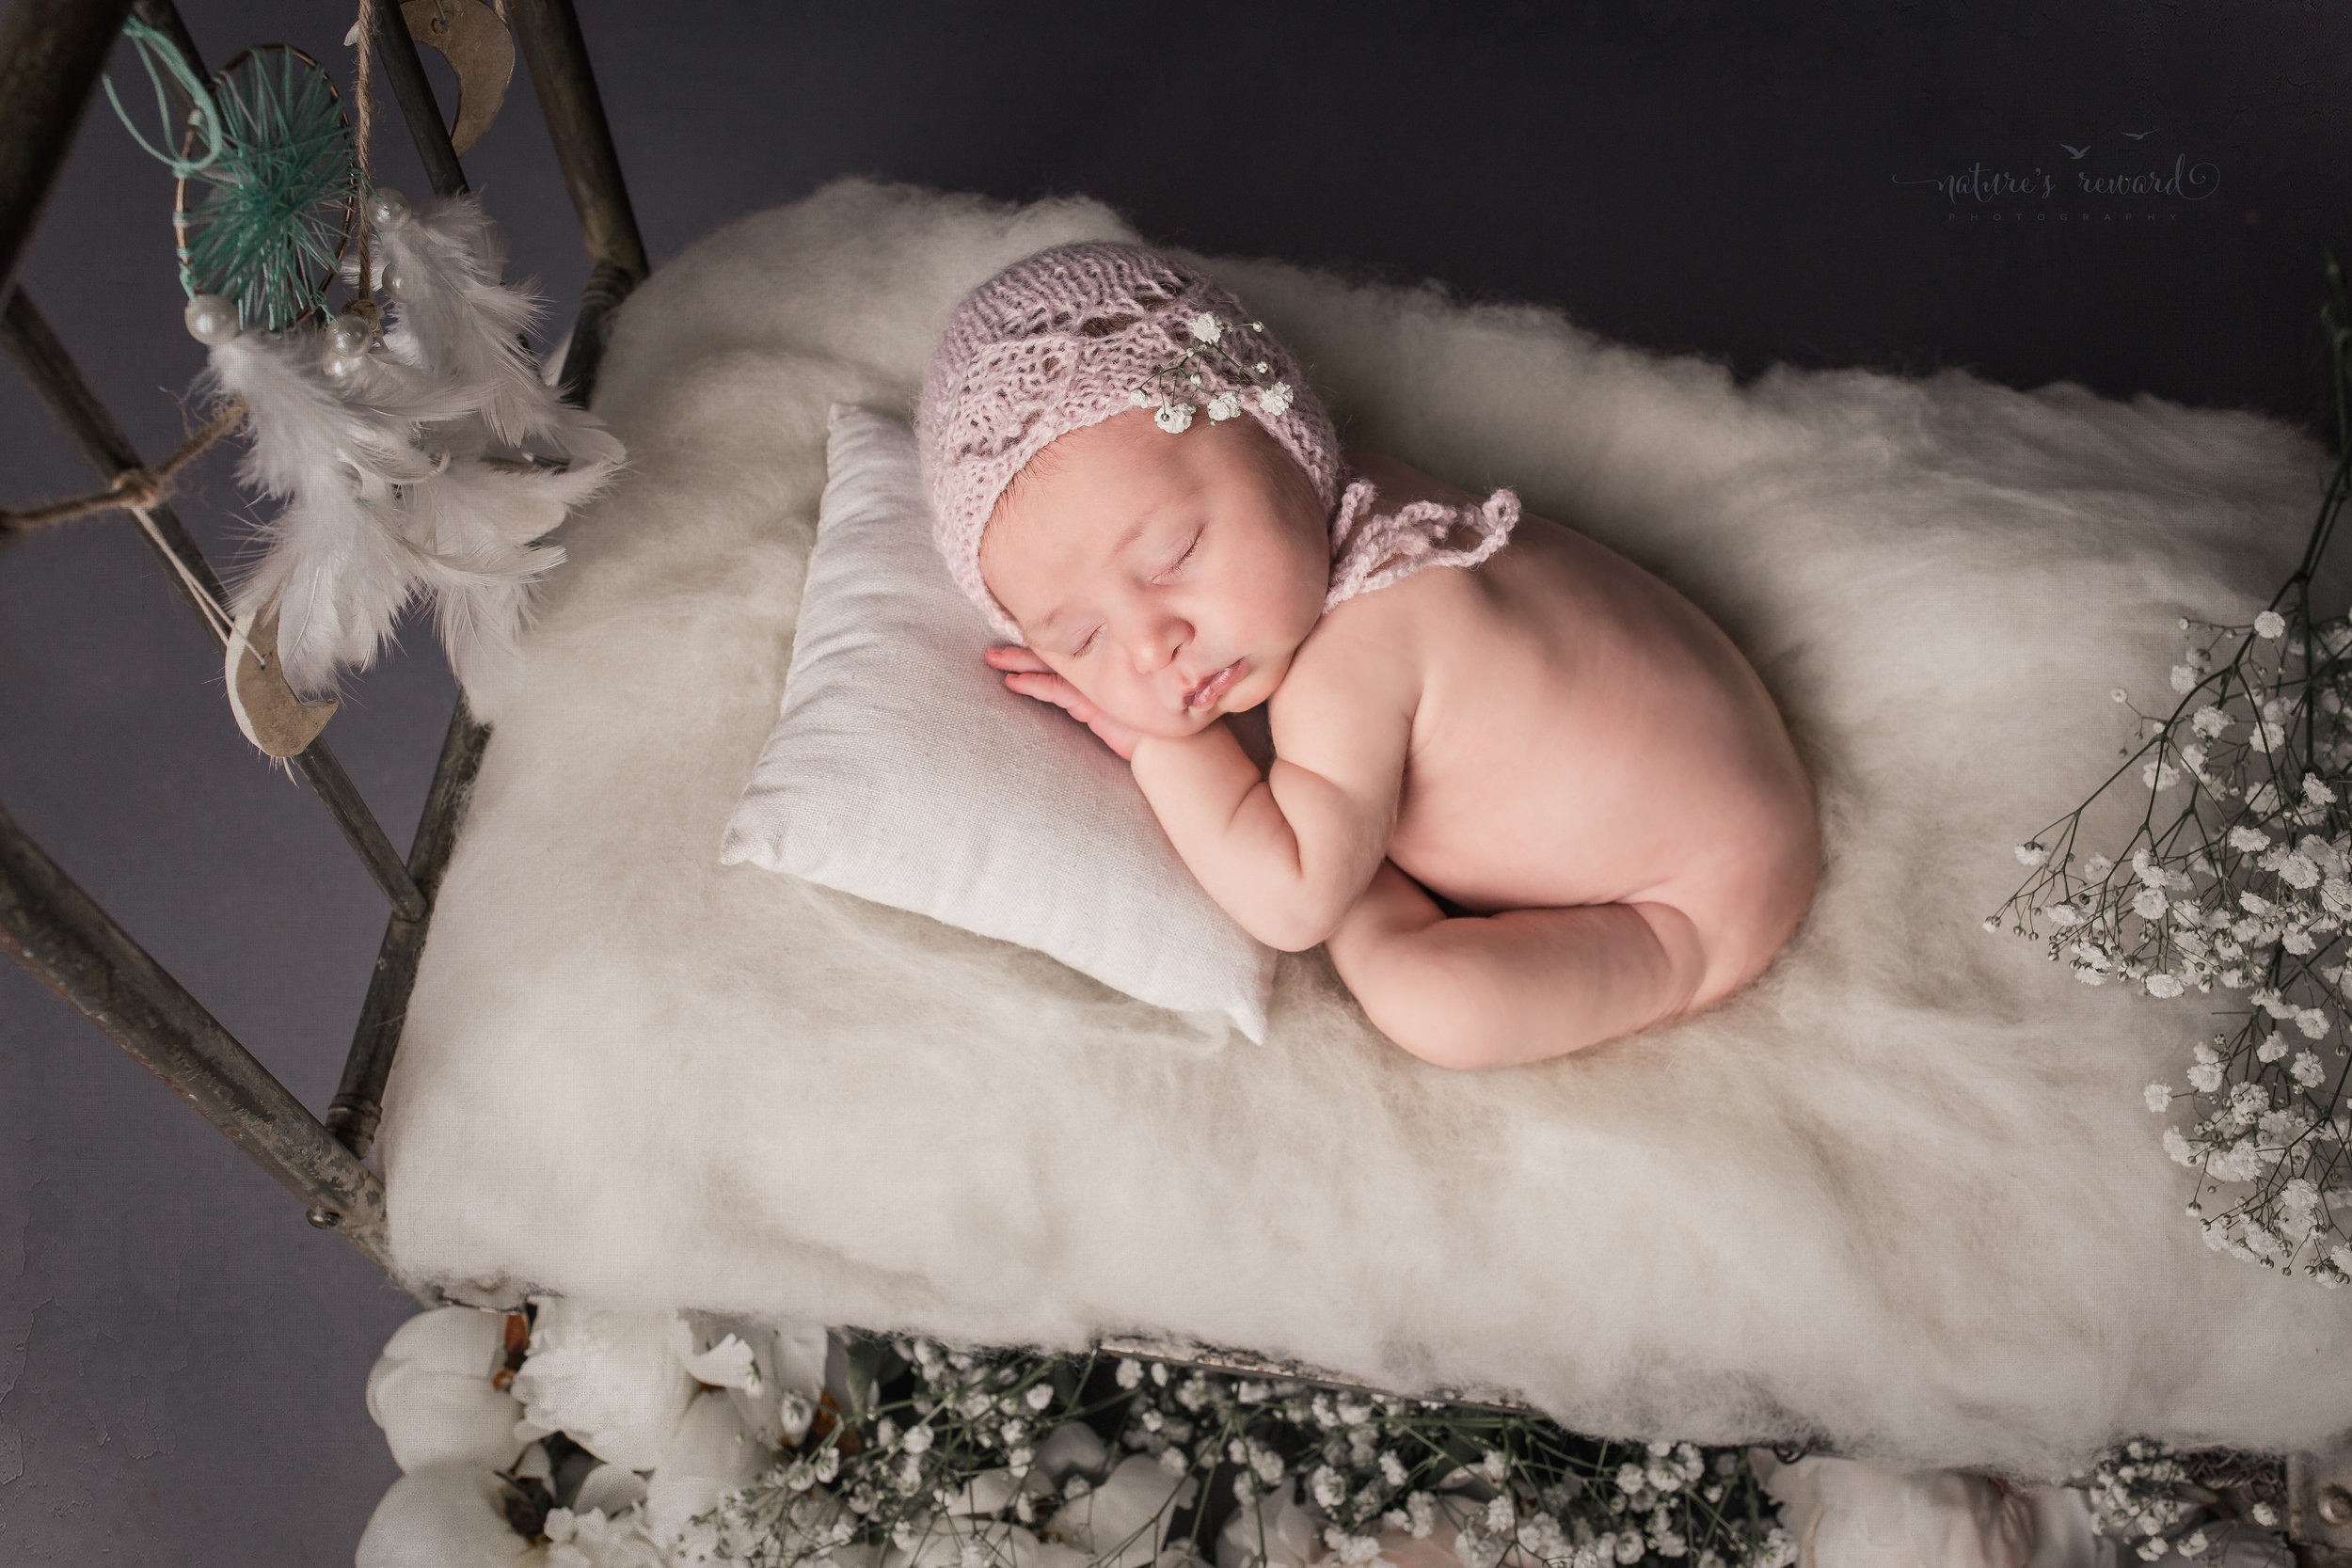 Newborn baby portrait in whites and soft pink, laying on a doll bed.A Portrait By Nature's Reward Photography, a San Bernardino Family, Child, and Newborn Baby Photographer.